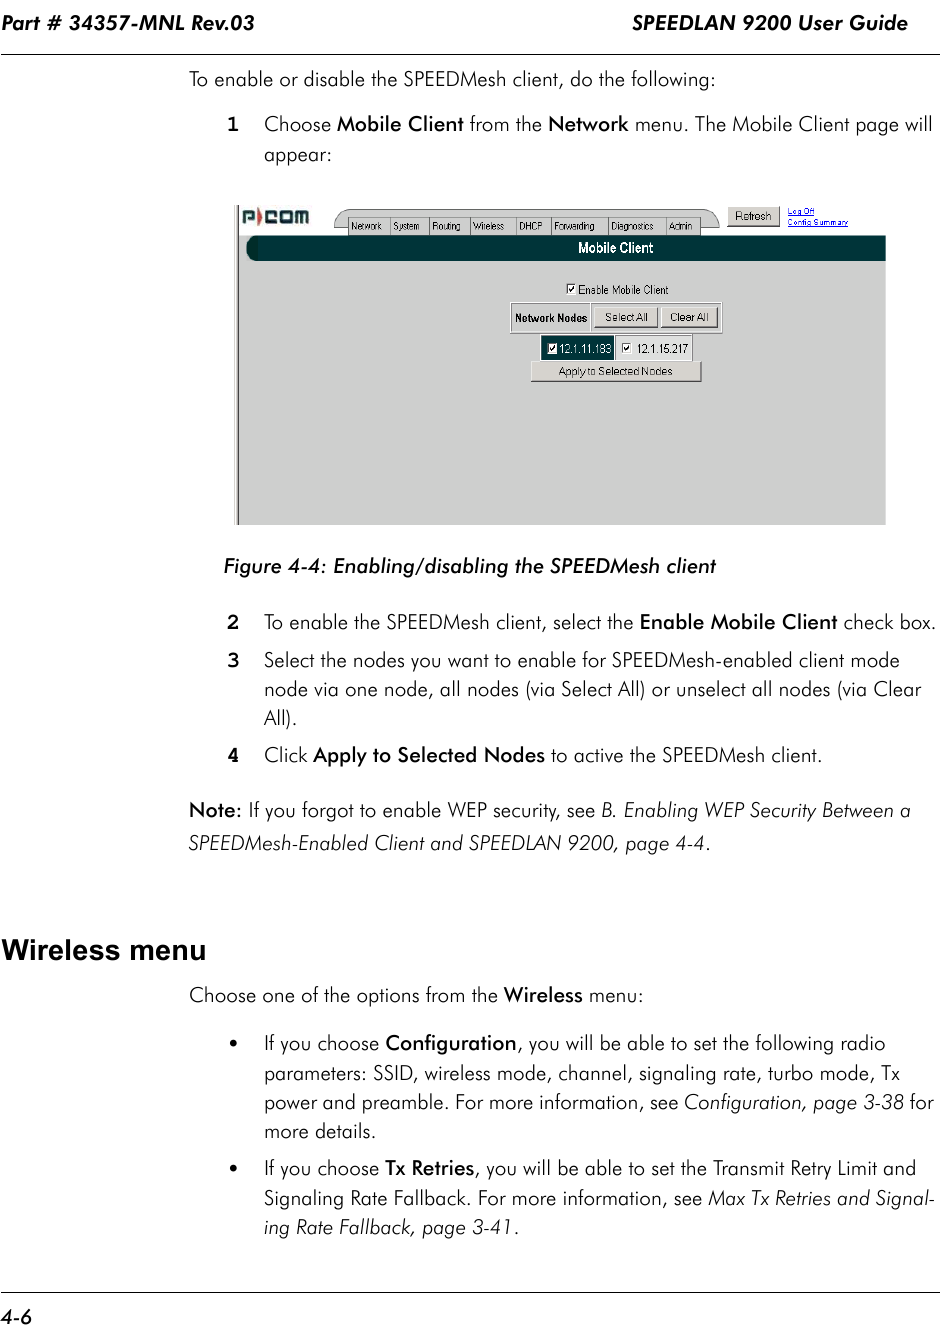 Part # 34357-MNL Rev.03                                                             SPEEDLAN 9200 User Guide 4-6To enable or disable the SPEEDMesh client, do the following:1Choose Mobile Client from the Network menu. The Mobile Client page will appear:Figure 4-4: Enabling/disabling the SPEEDMesh client2To enable the SPEEDMesh client, select the Enable Mobile Client check box.3Select the nodes you want to enable for SPEEDMesh-enabled client mode node via one node, all nodes (via Select All) or unselect all nodes (via Clear All).4Click Apply to Selected Nodes to active the SPEEDMesh client. Note: If you forgot to enable WEP security, see B. Enabling WEP Security Between a SPEEDMesh-Enabled Client and SPEEDLAN 9200, page 4-4.Wireless menuChoose one of the options from the Wireless menu:  •If you choose Configuration, you will be able to set the following radio parameters: SSID, wireless mode, channel, signaling rate, turbo mode, Tx power and preamble. For more information, see Configuration, page 3-38 for more details.•If you choose Tx Retries, you will be able to set the Transmit Retry Limit and Signaling Rate Fallback. For more information, see Max Tx Retries and Signal-ing Rate Fallback, page 3-41.